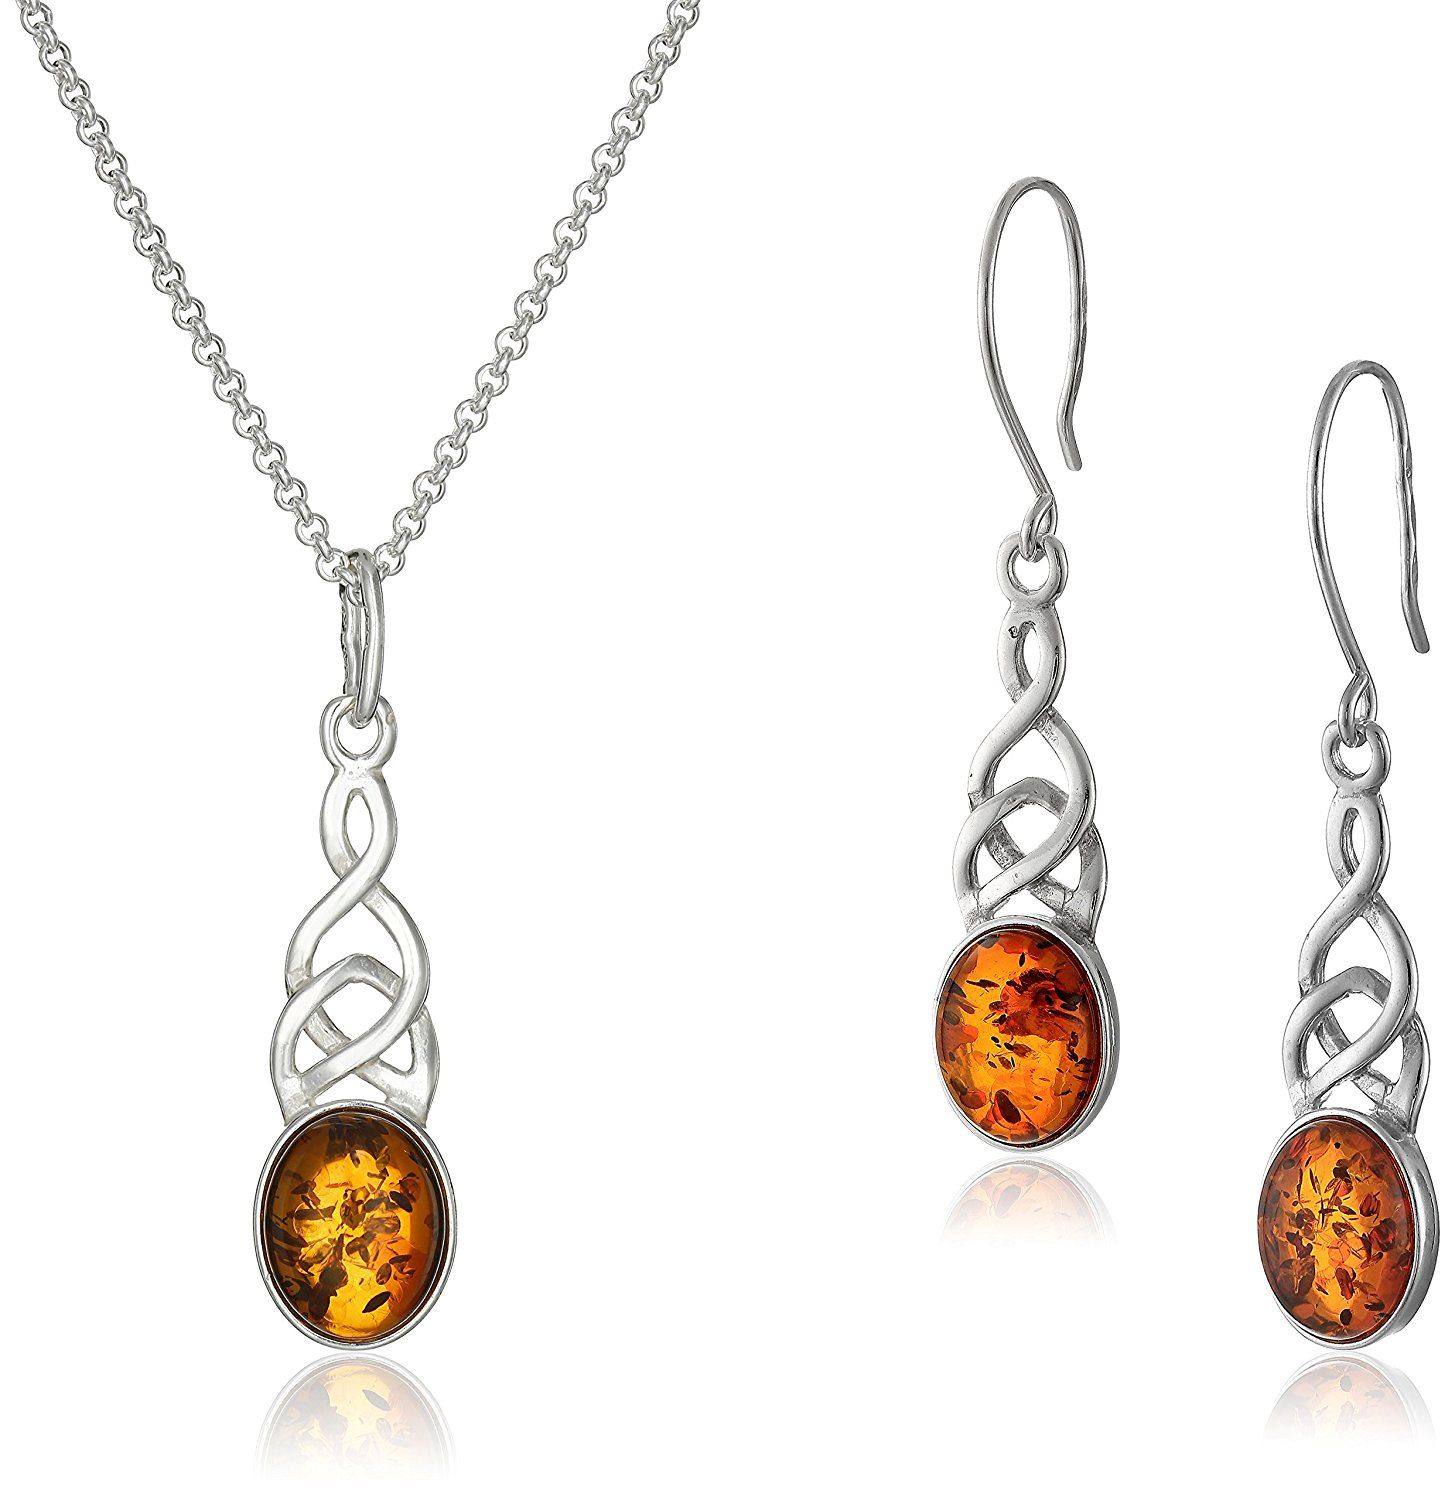 Honey amber sterling silver celtic earrings and pendant necklace